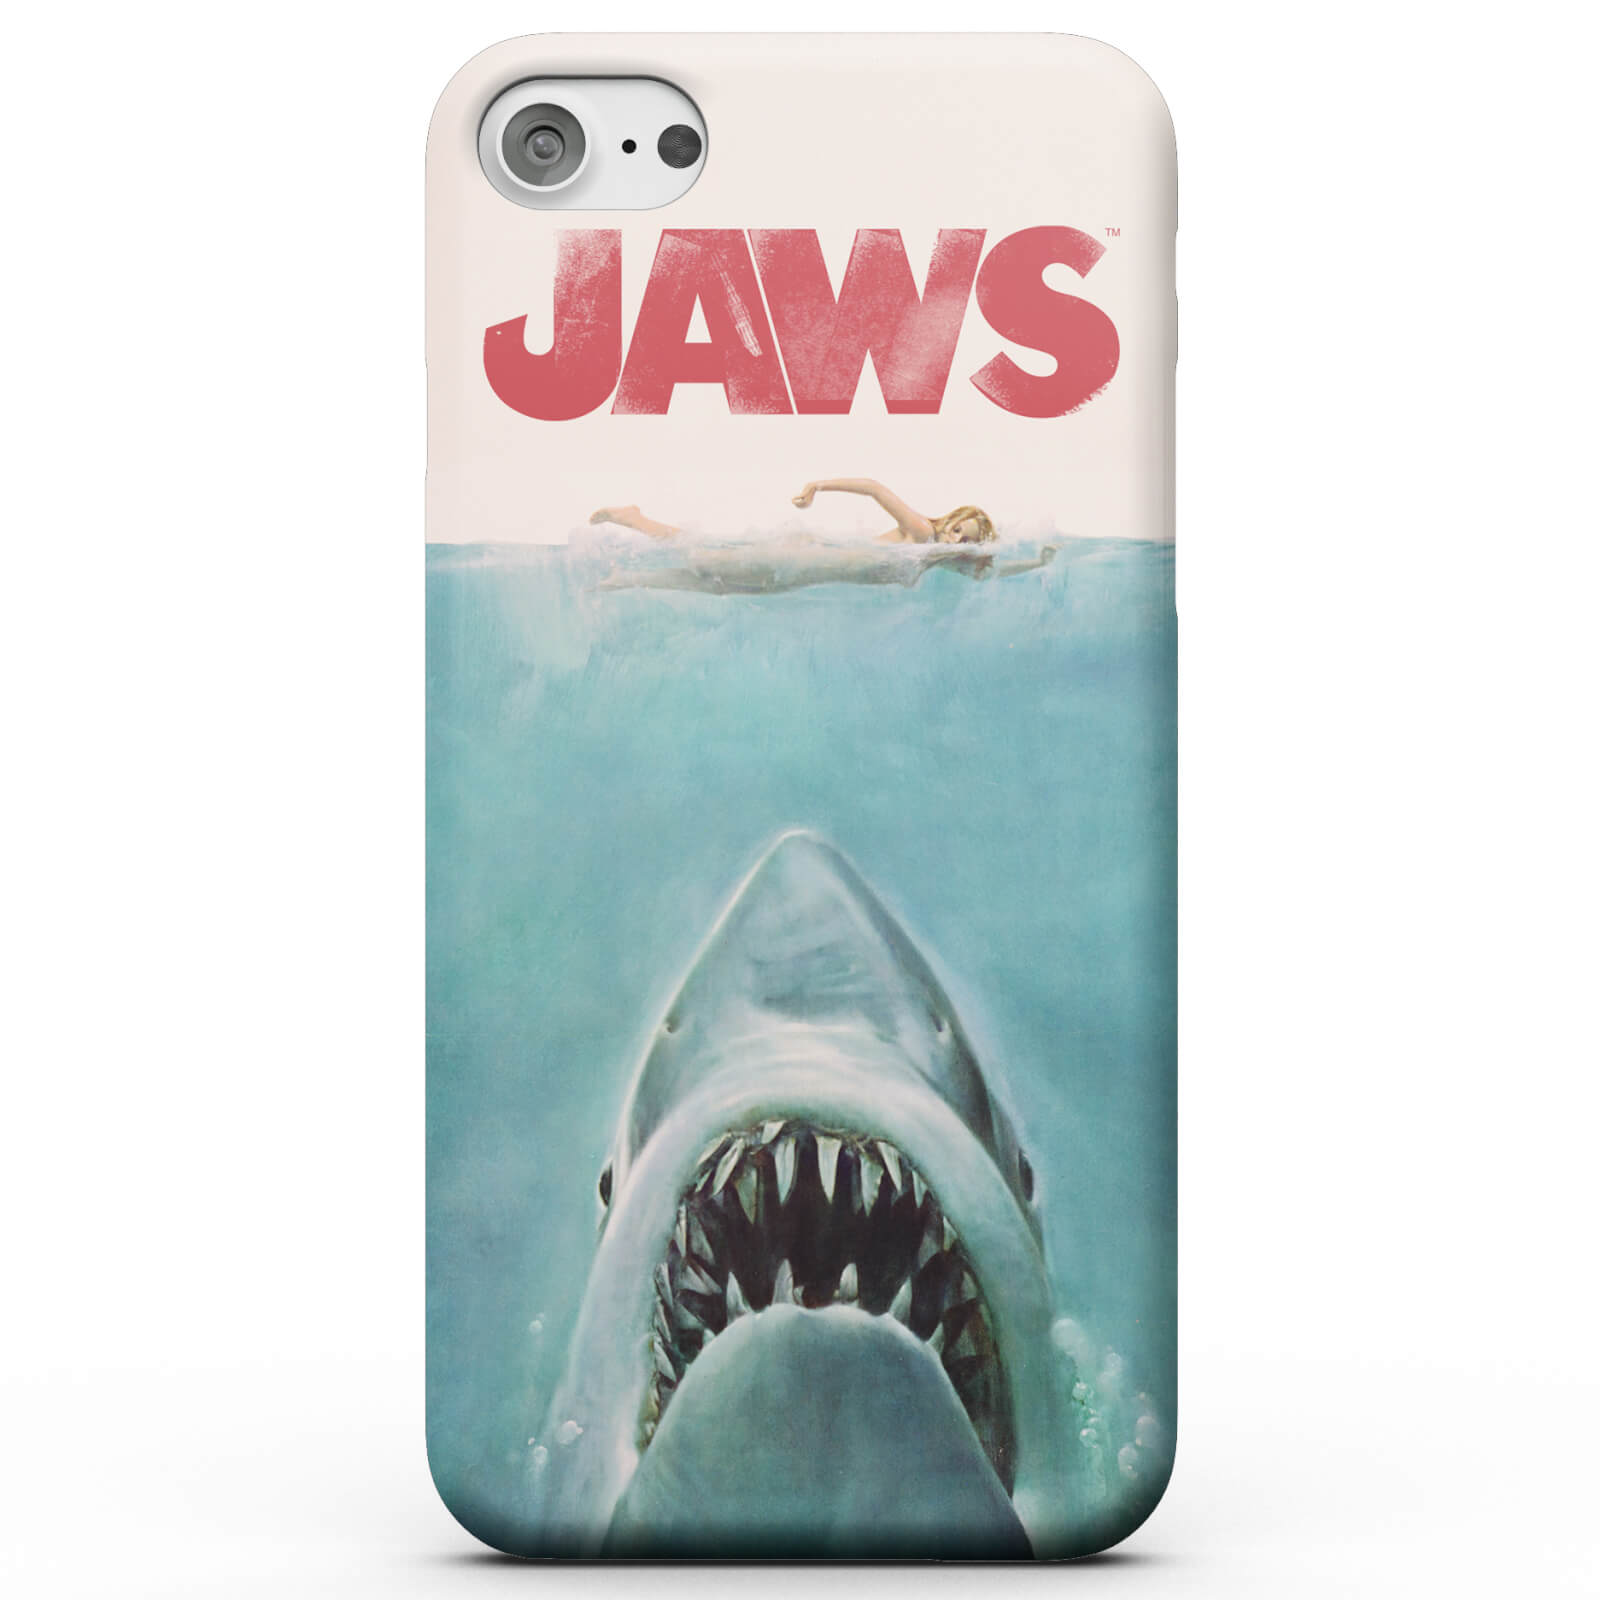 JAWS POSTER iphone case